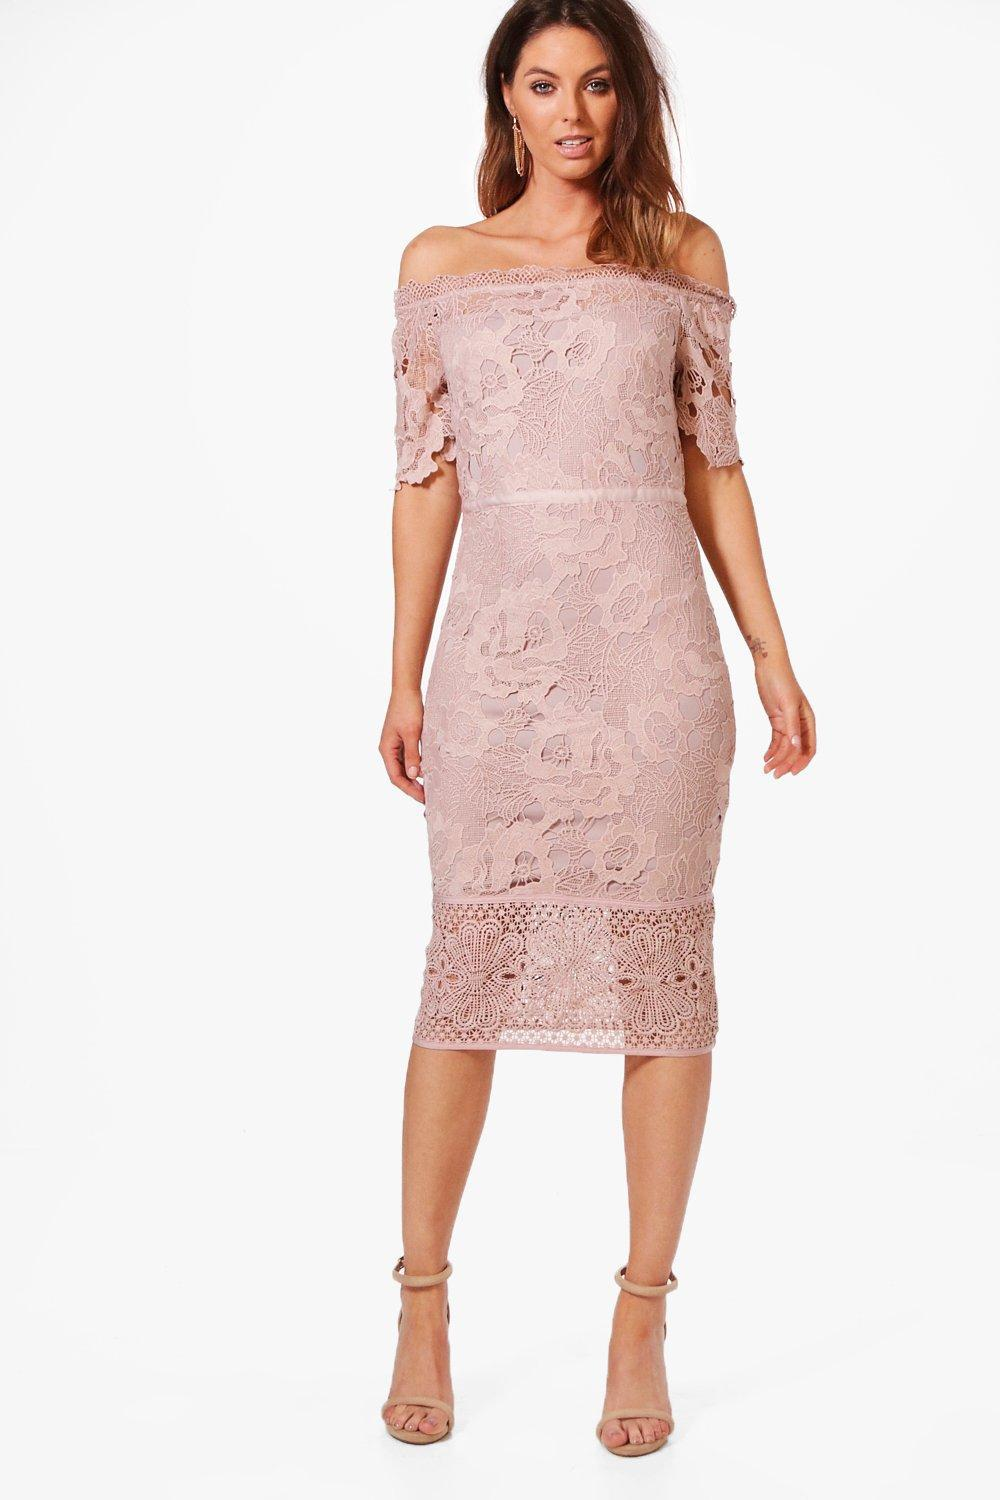 Boohoo Boutique Off Shoulder Lace Midi Dress in Pink - Lyst efa1634fa